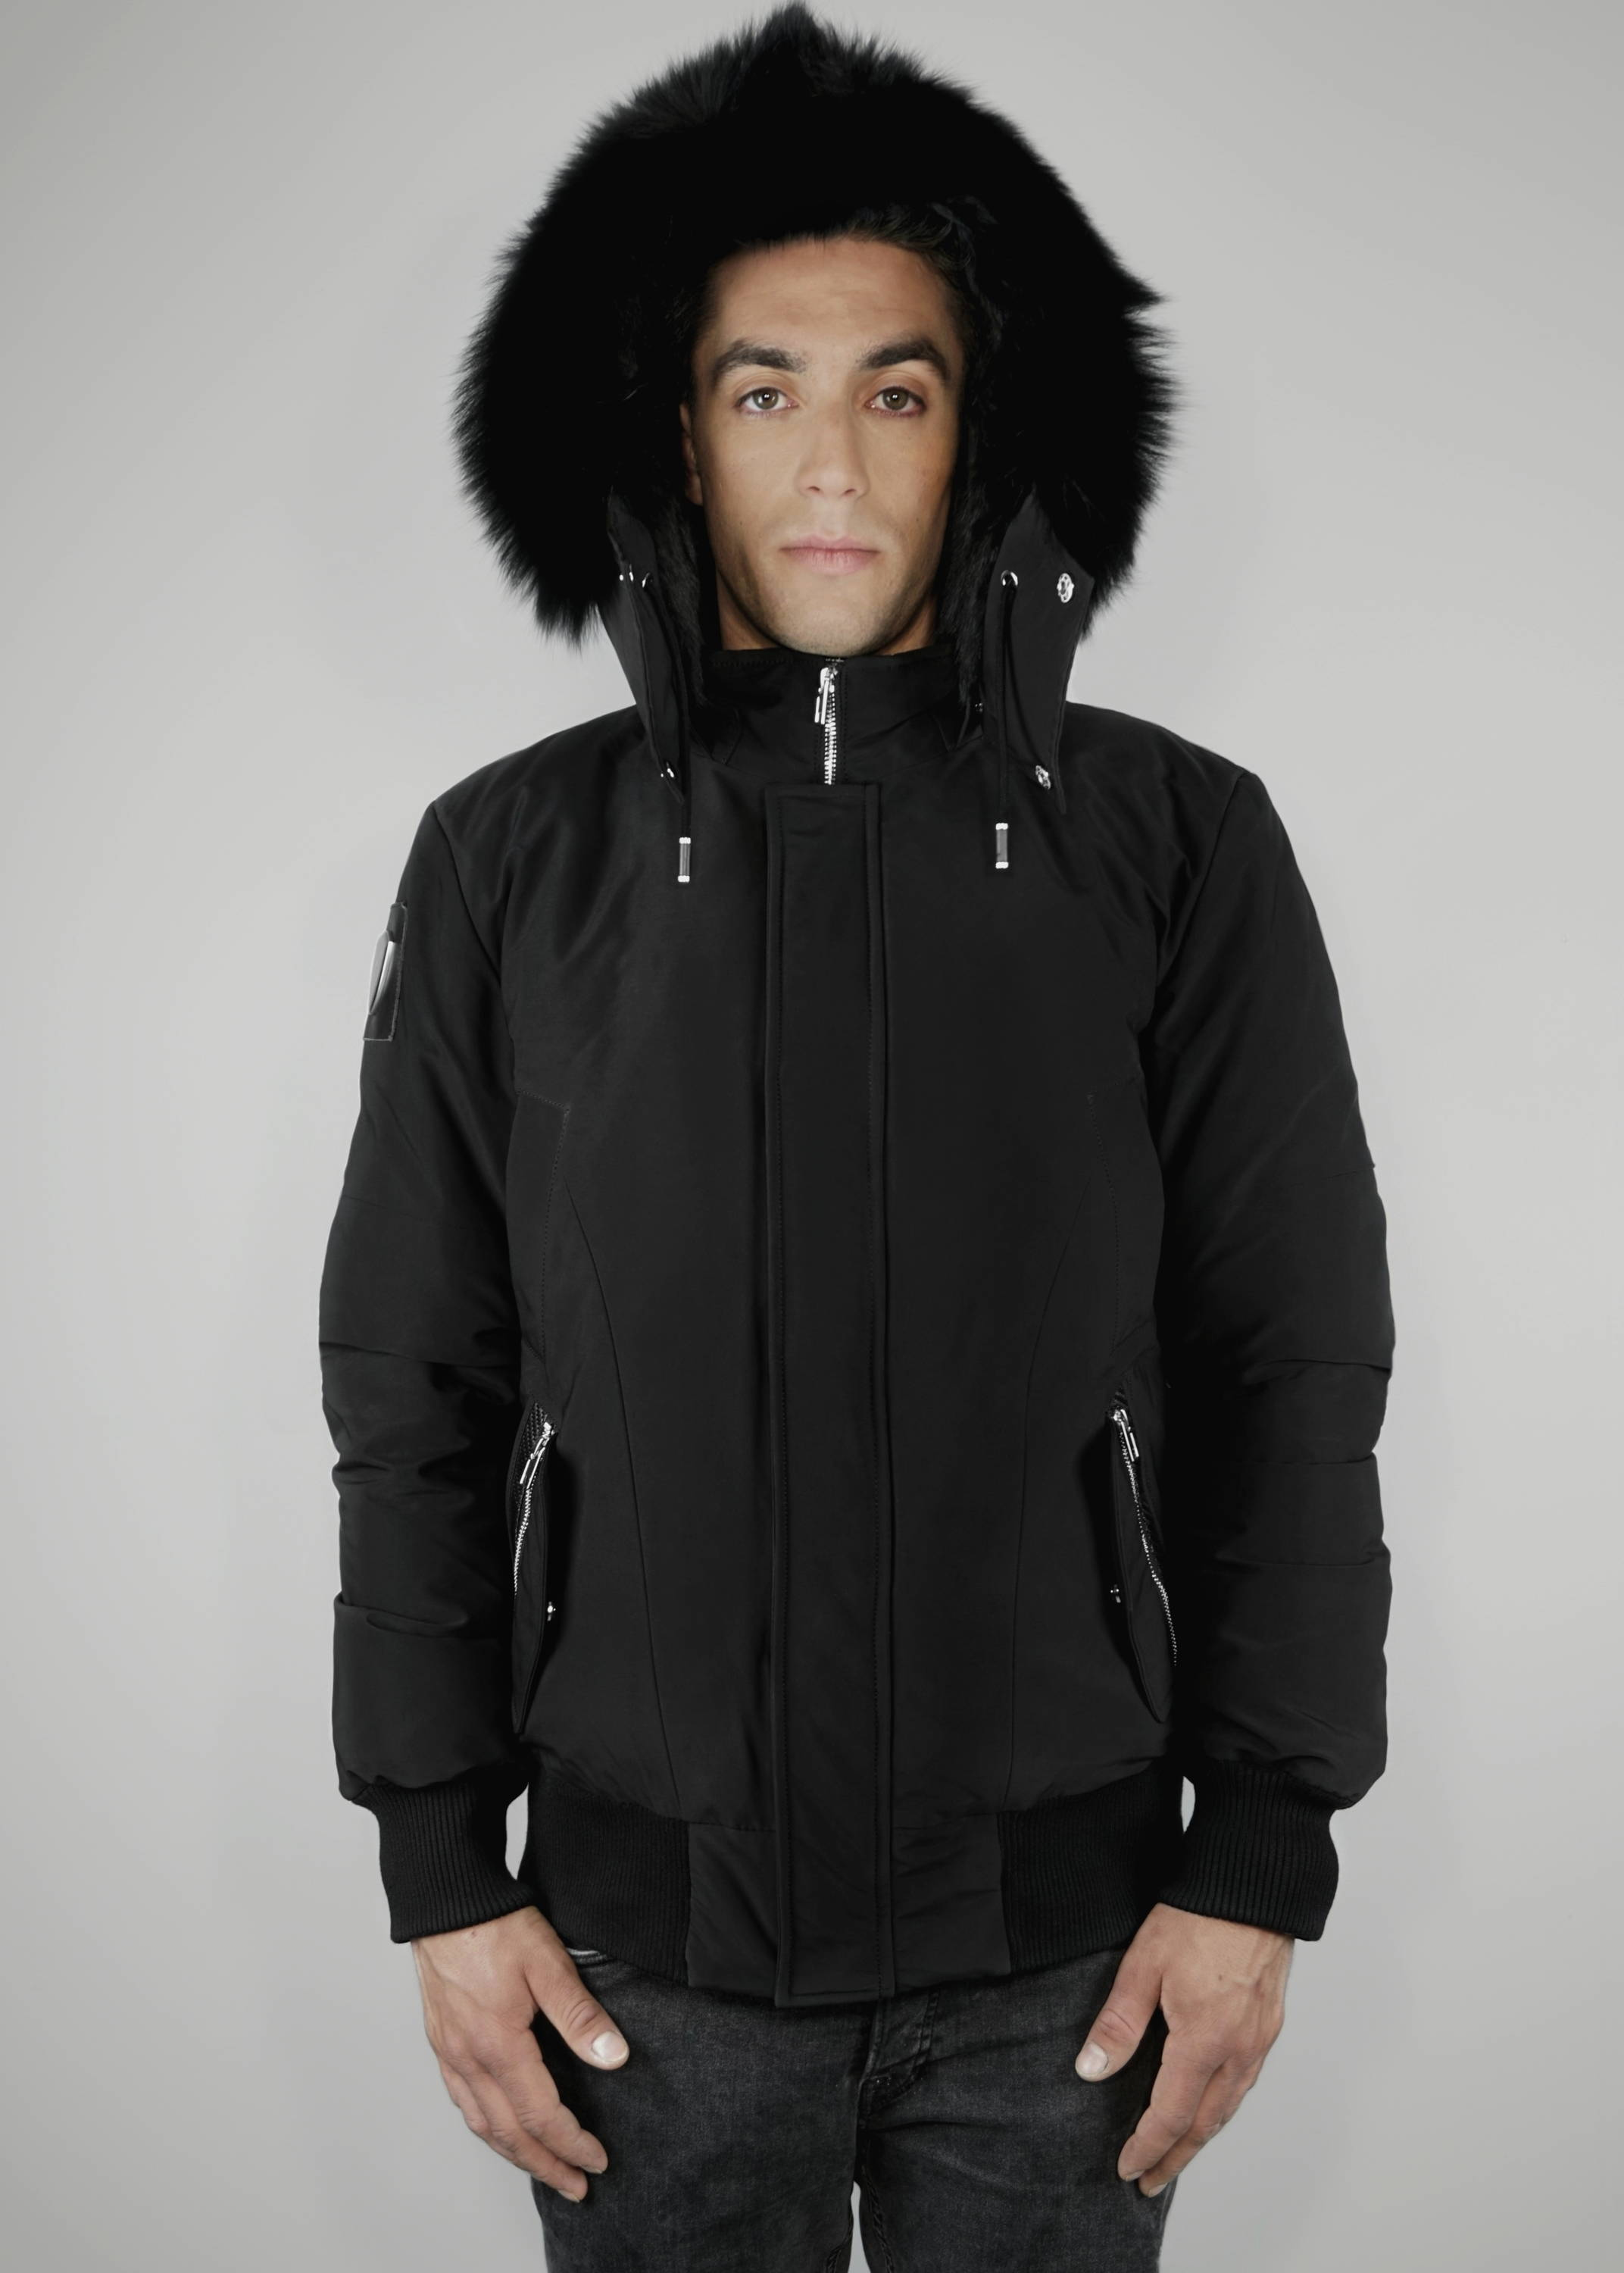 carbonesque mens signature obsidian bomber